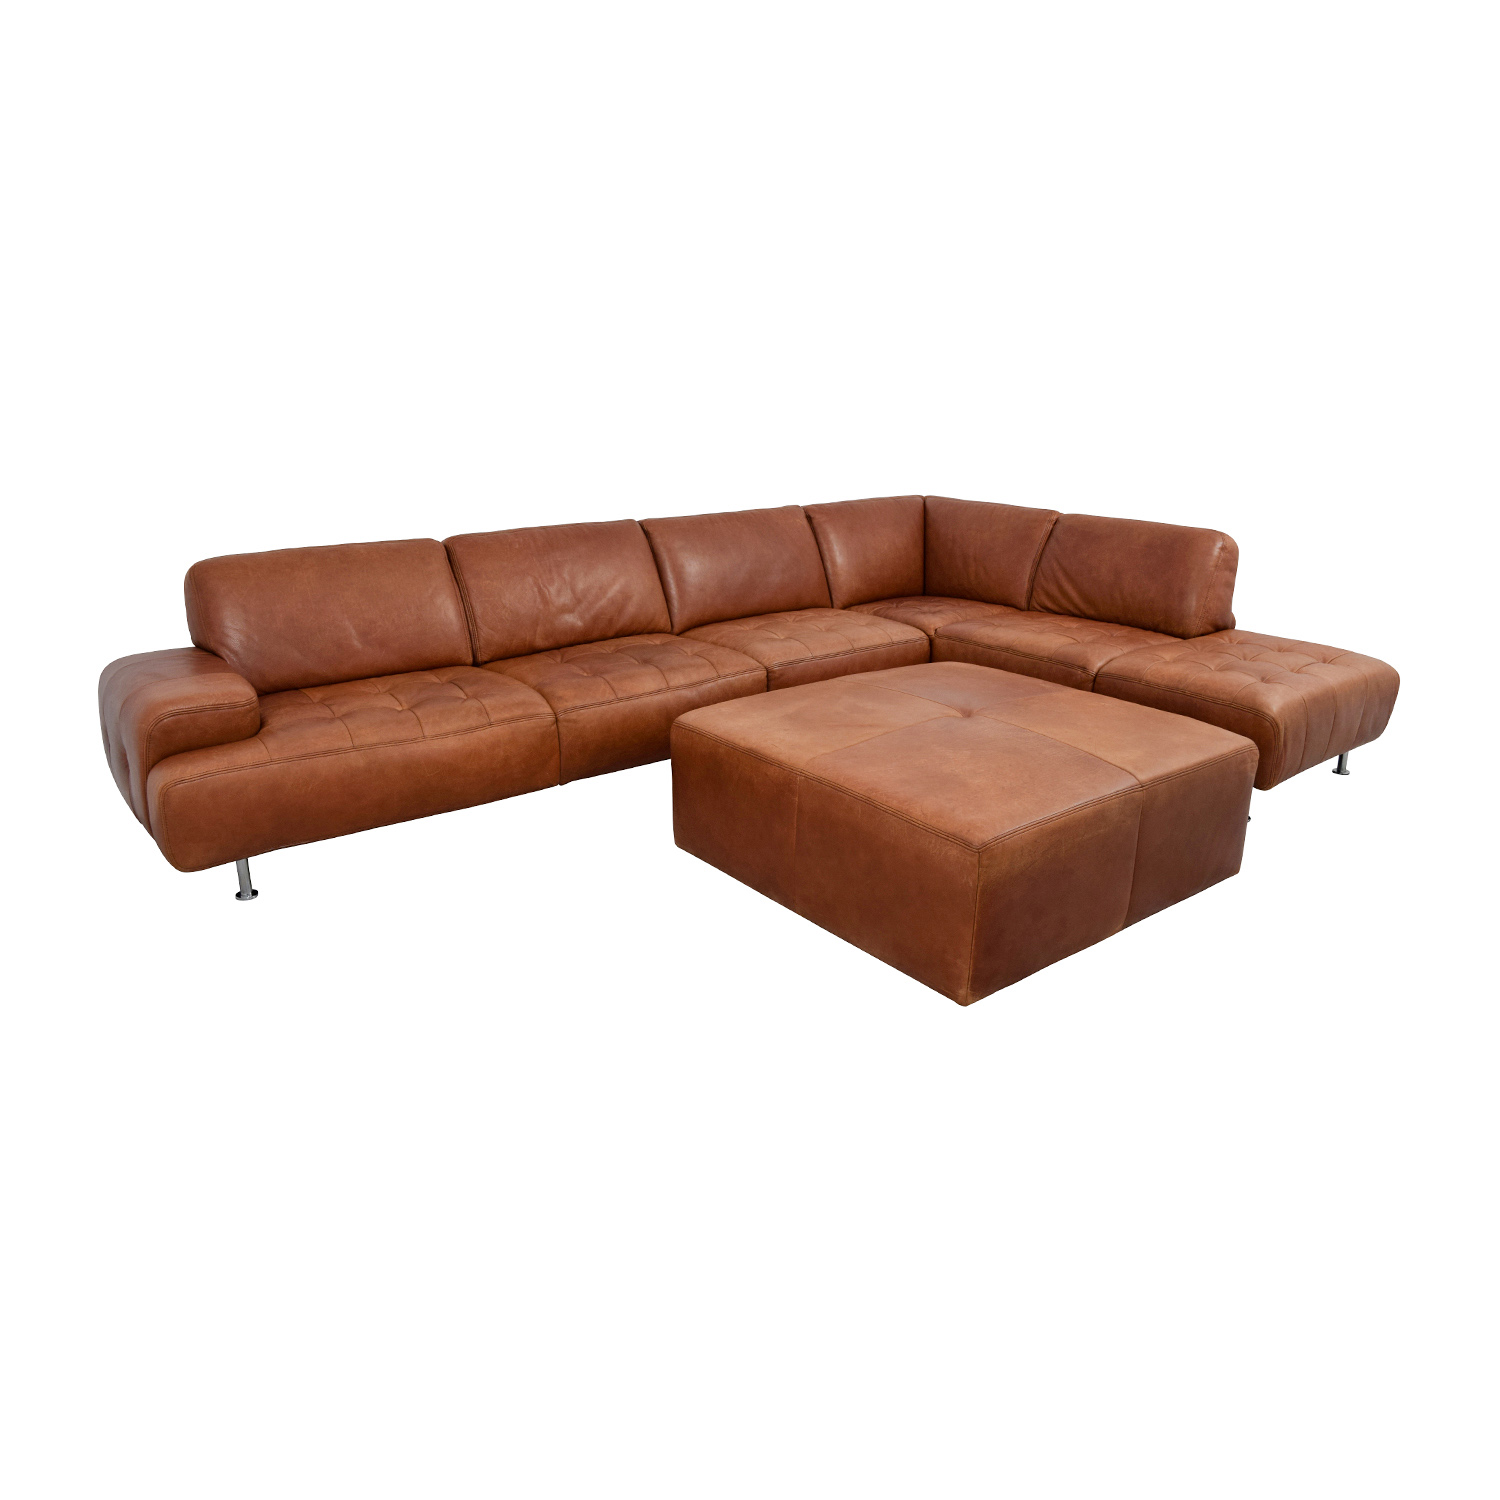 W. Schillig W. Schillig Leather Sectional with Ottoman